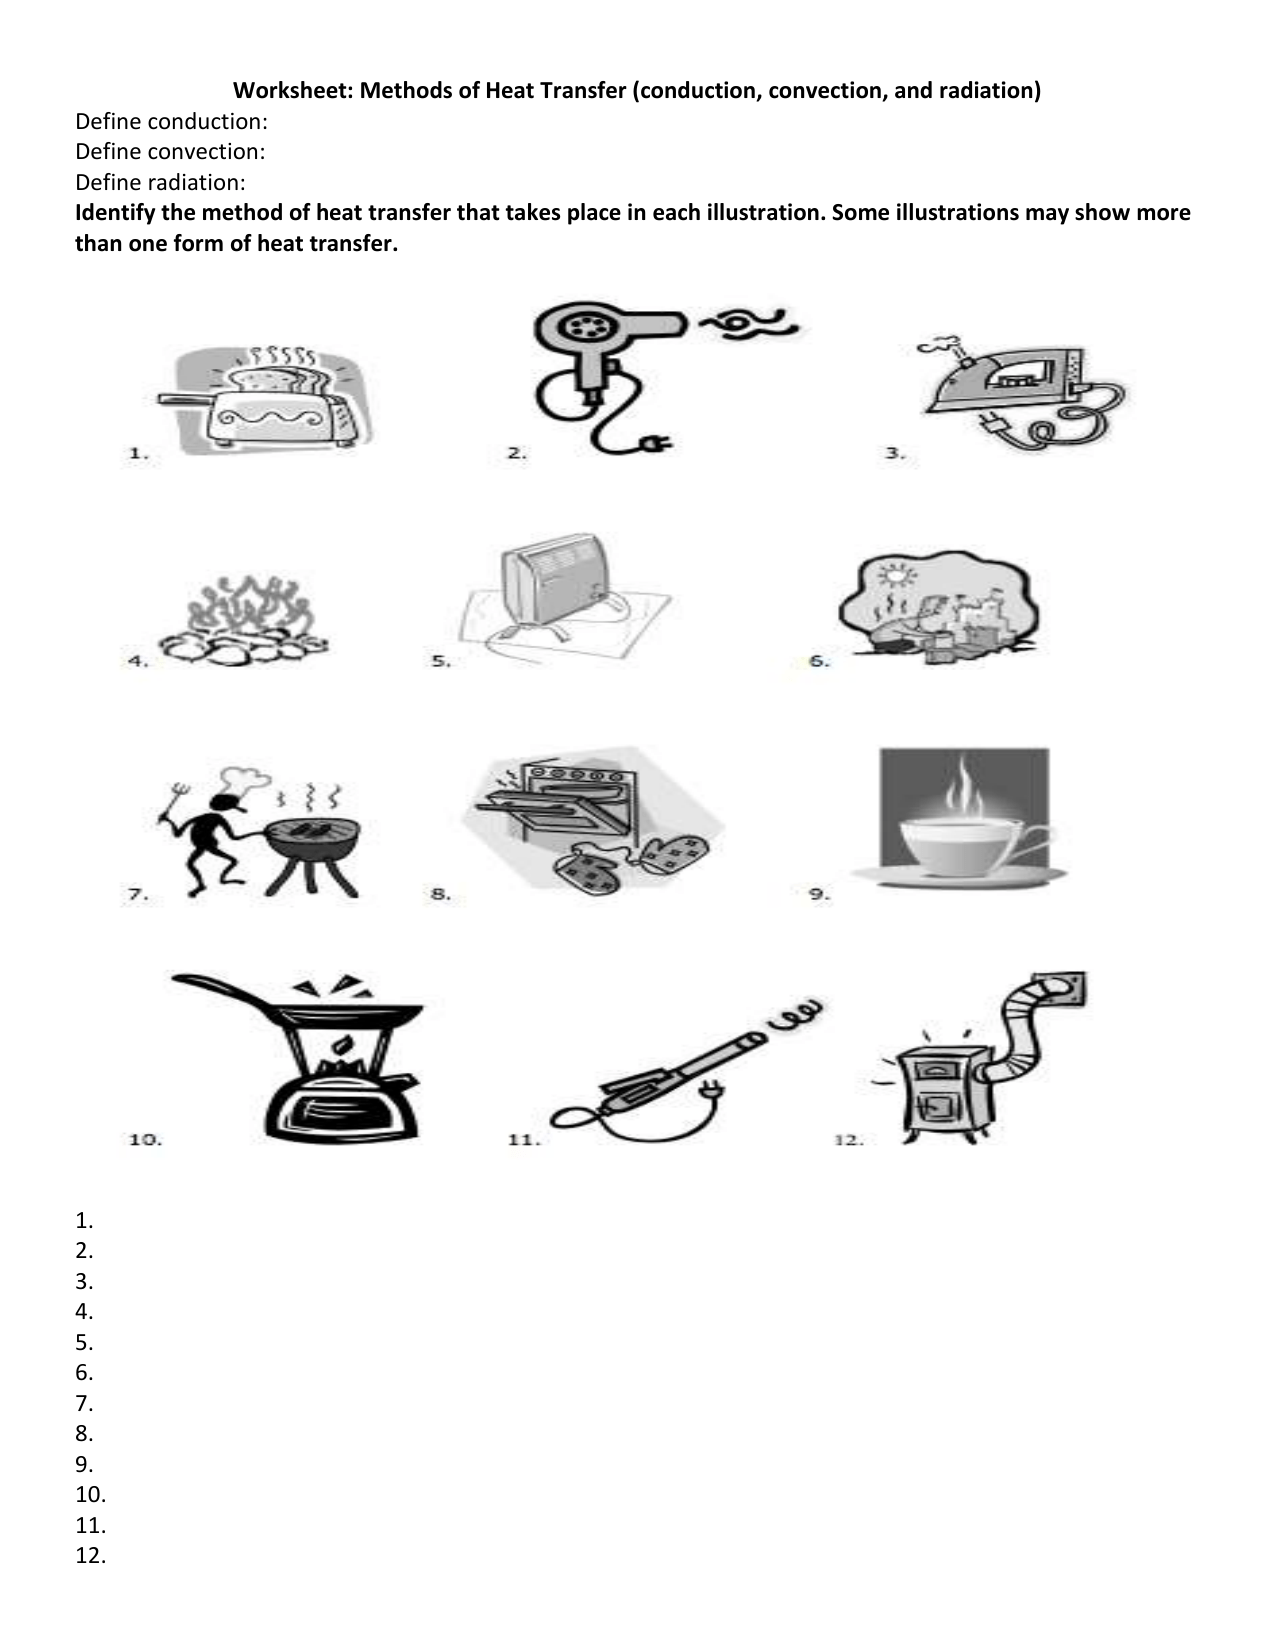 Methods Of Heat Transfer Worksheet Answers